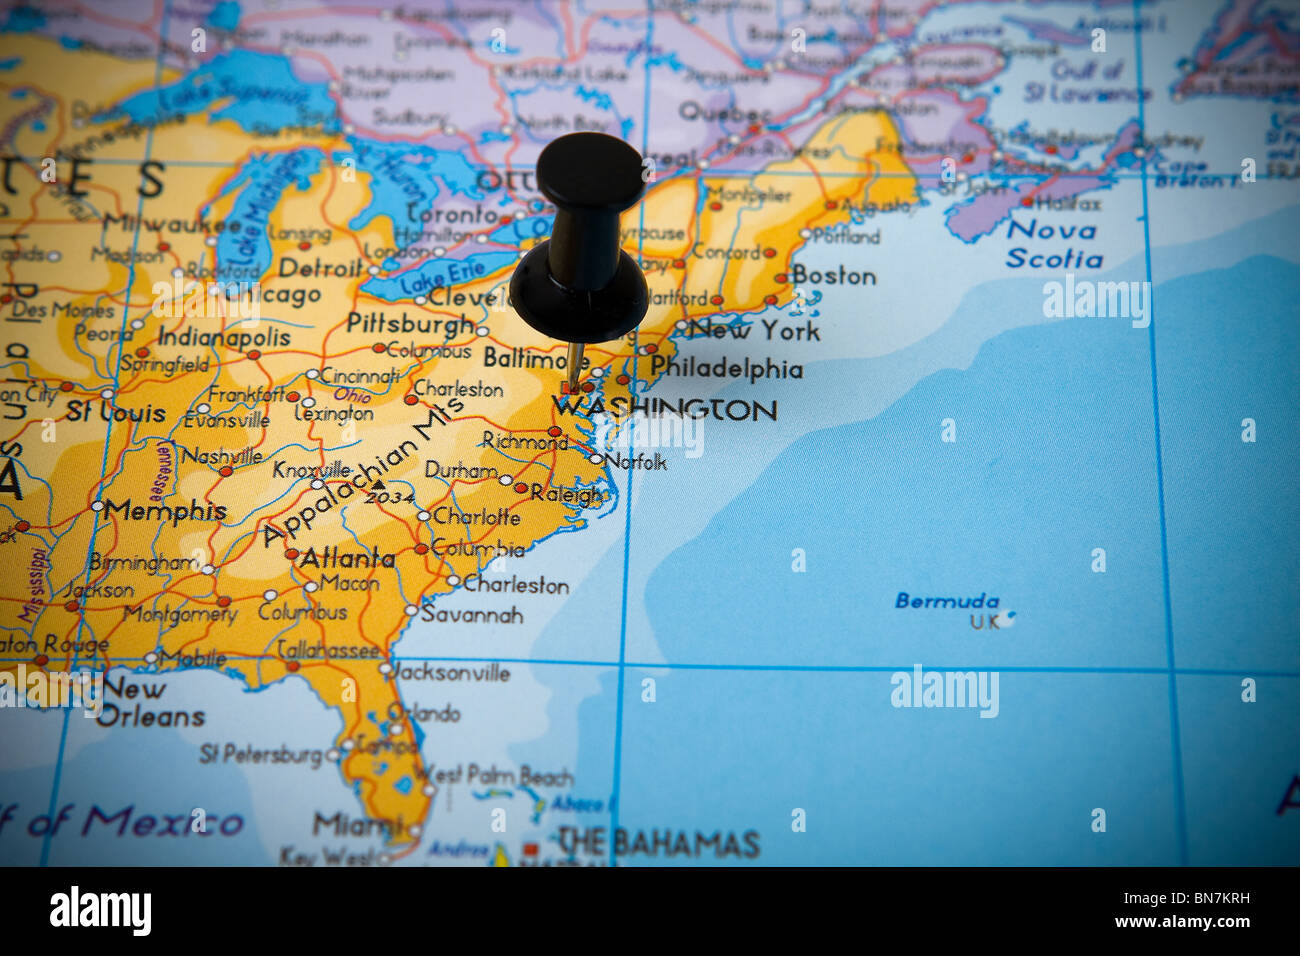 Small pin pointing on Washington USA in map of North America Stock